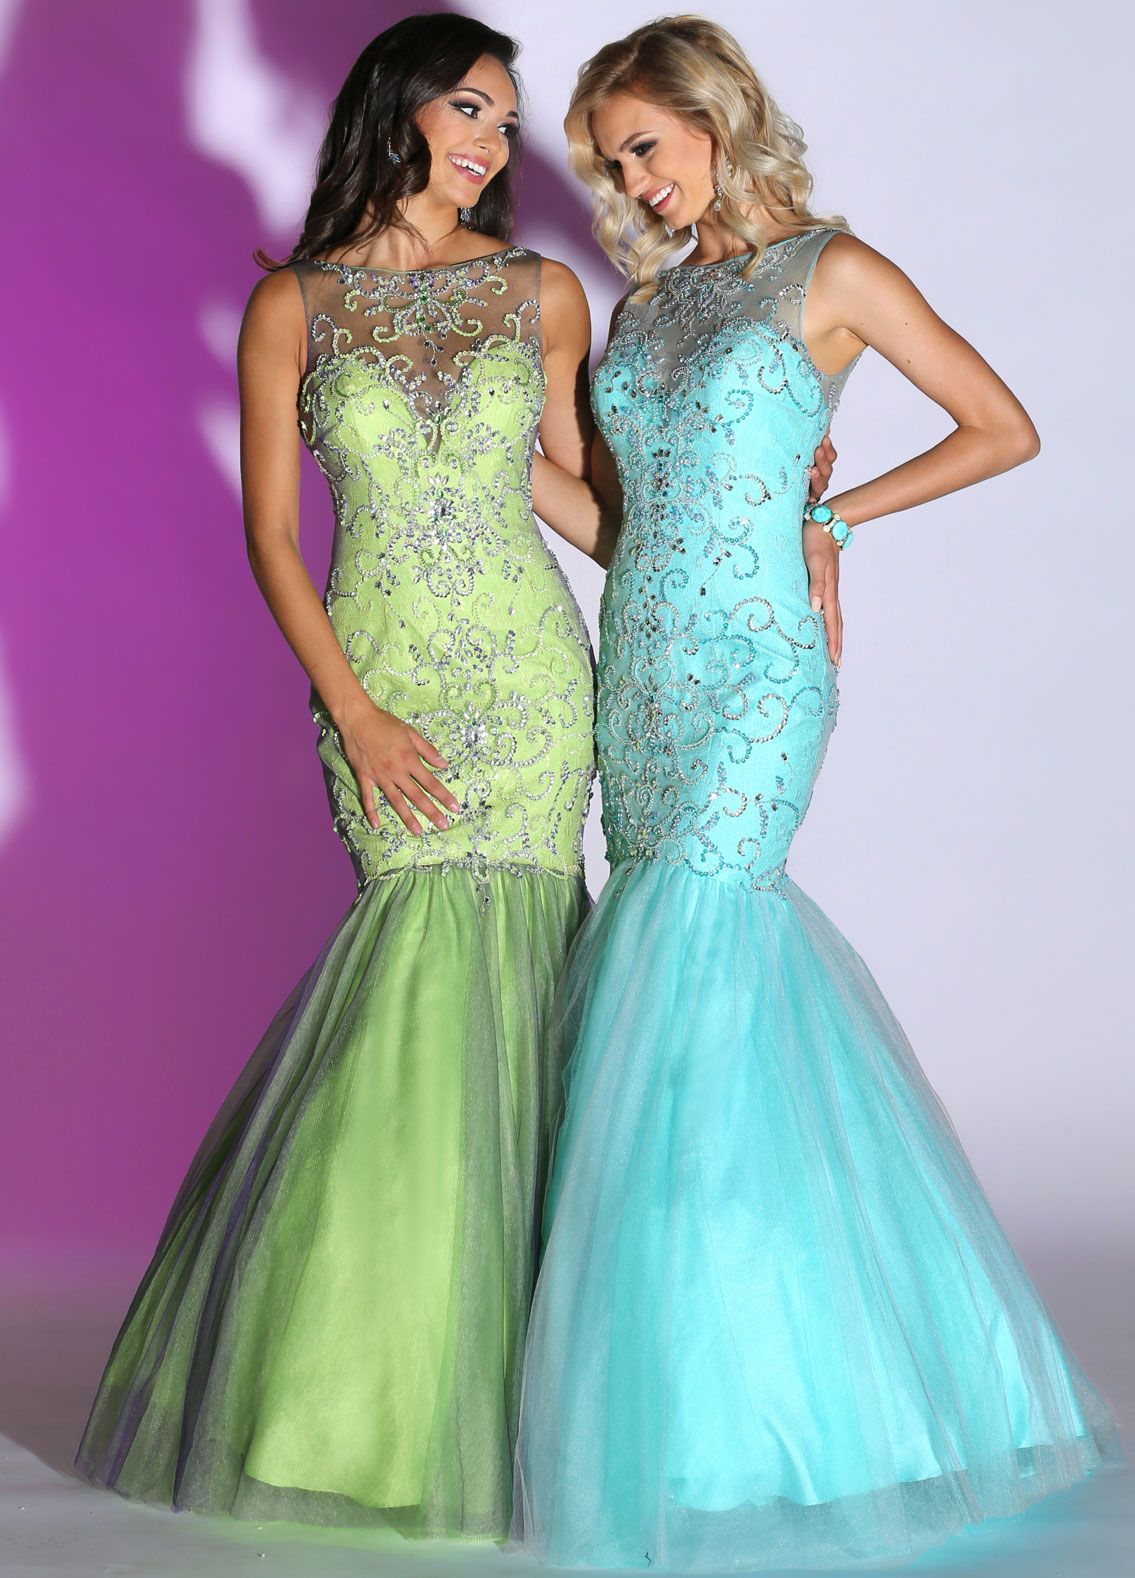 Pin by Aronia C. on Prom / Quinceanera / Evening | Pinterest ...